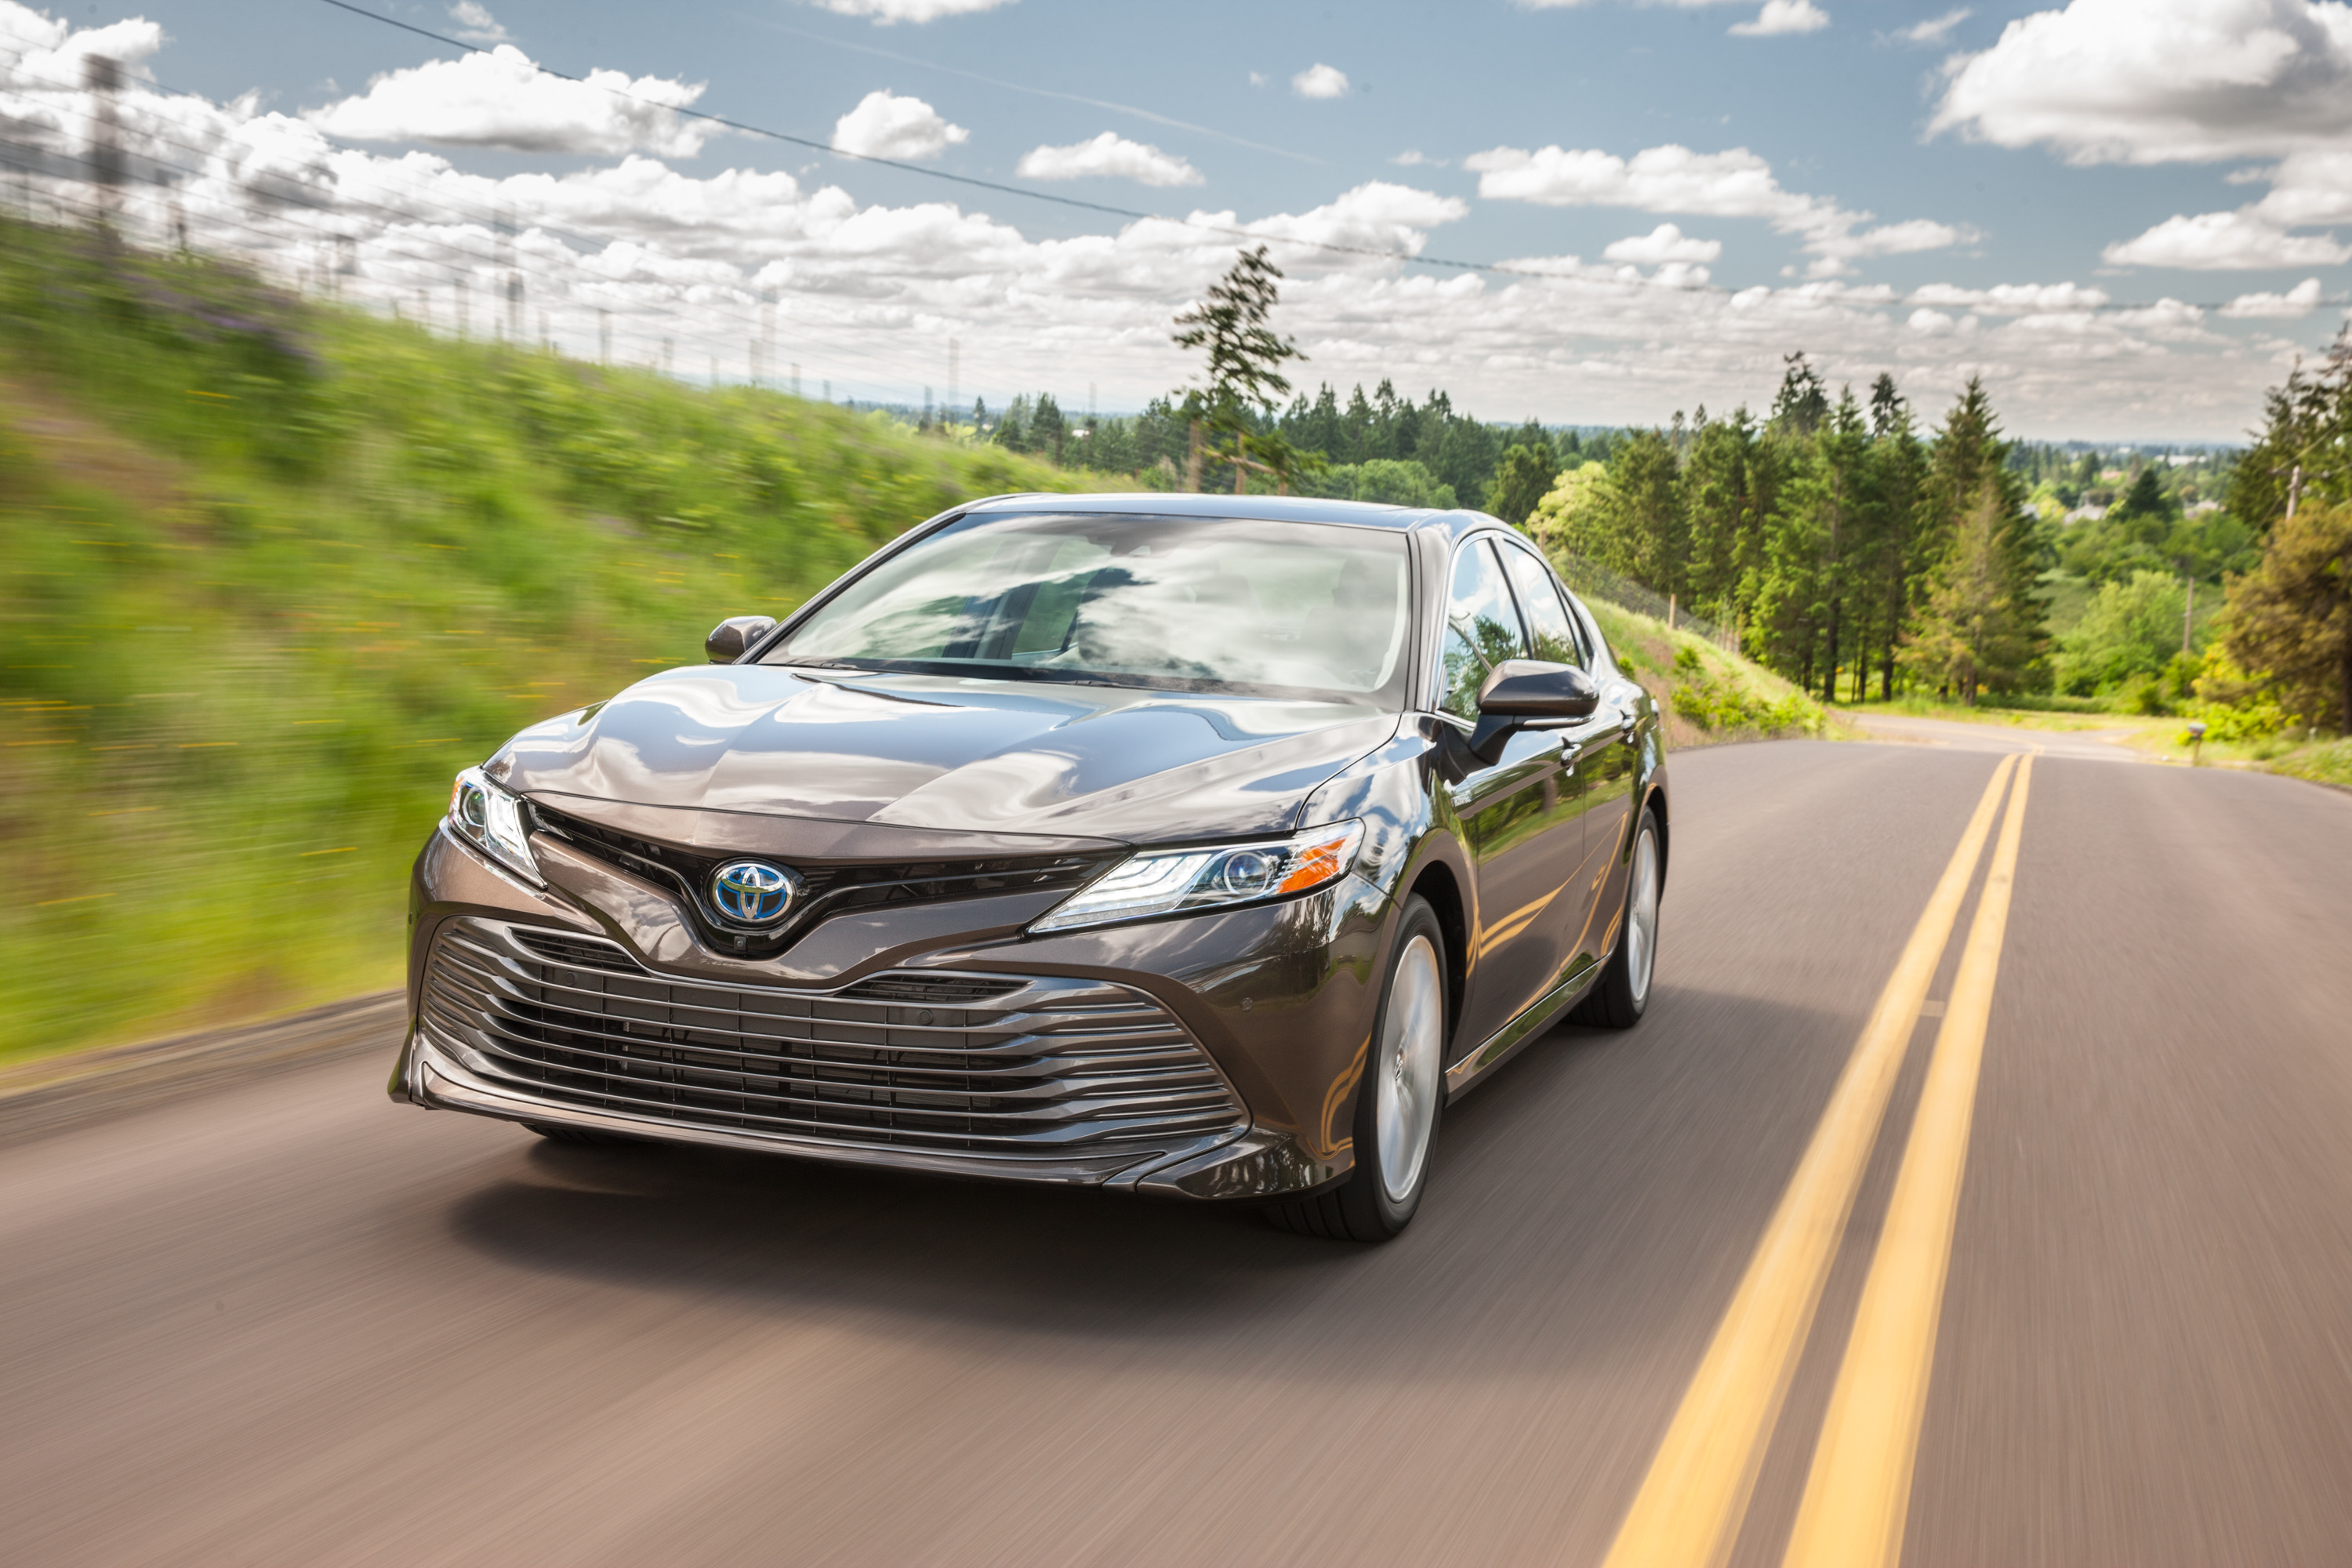 New Camry isn't sexy, but it is attractively practical | ClassicCars.com